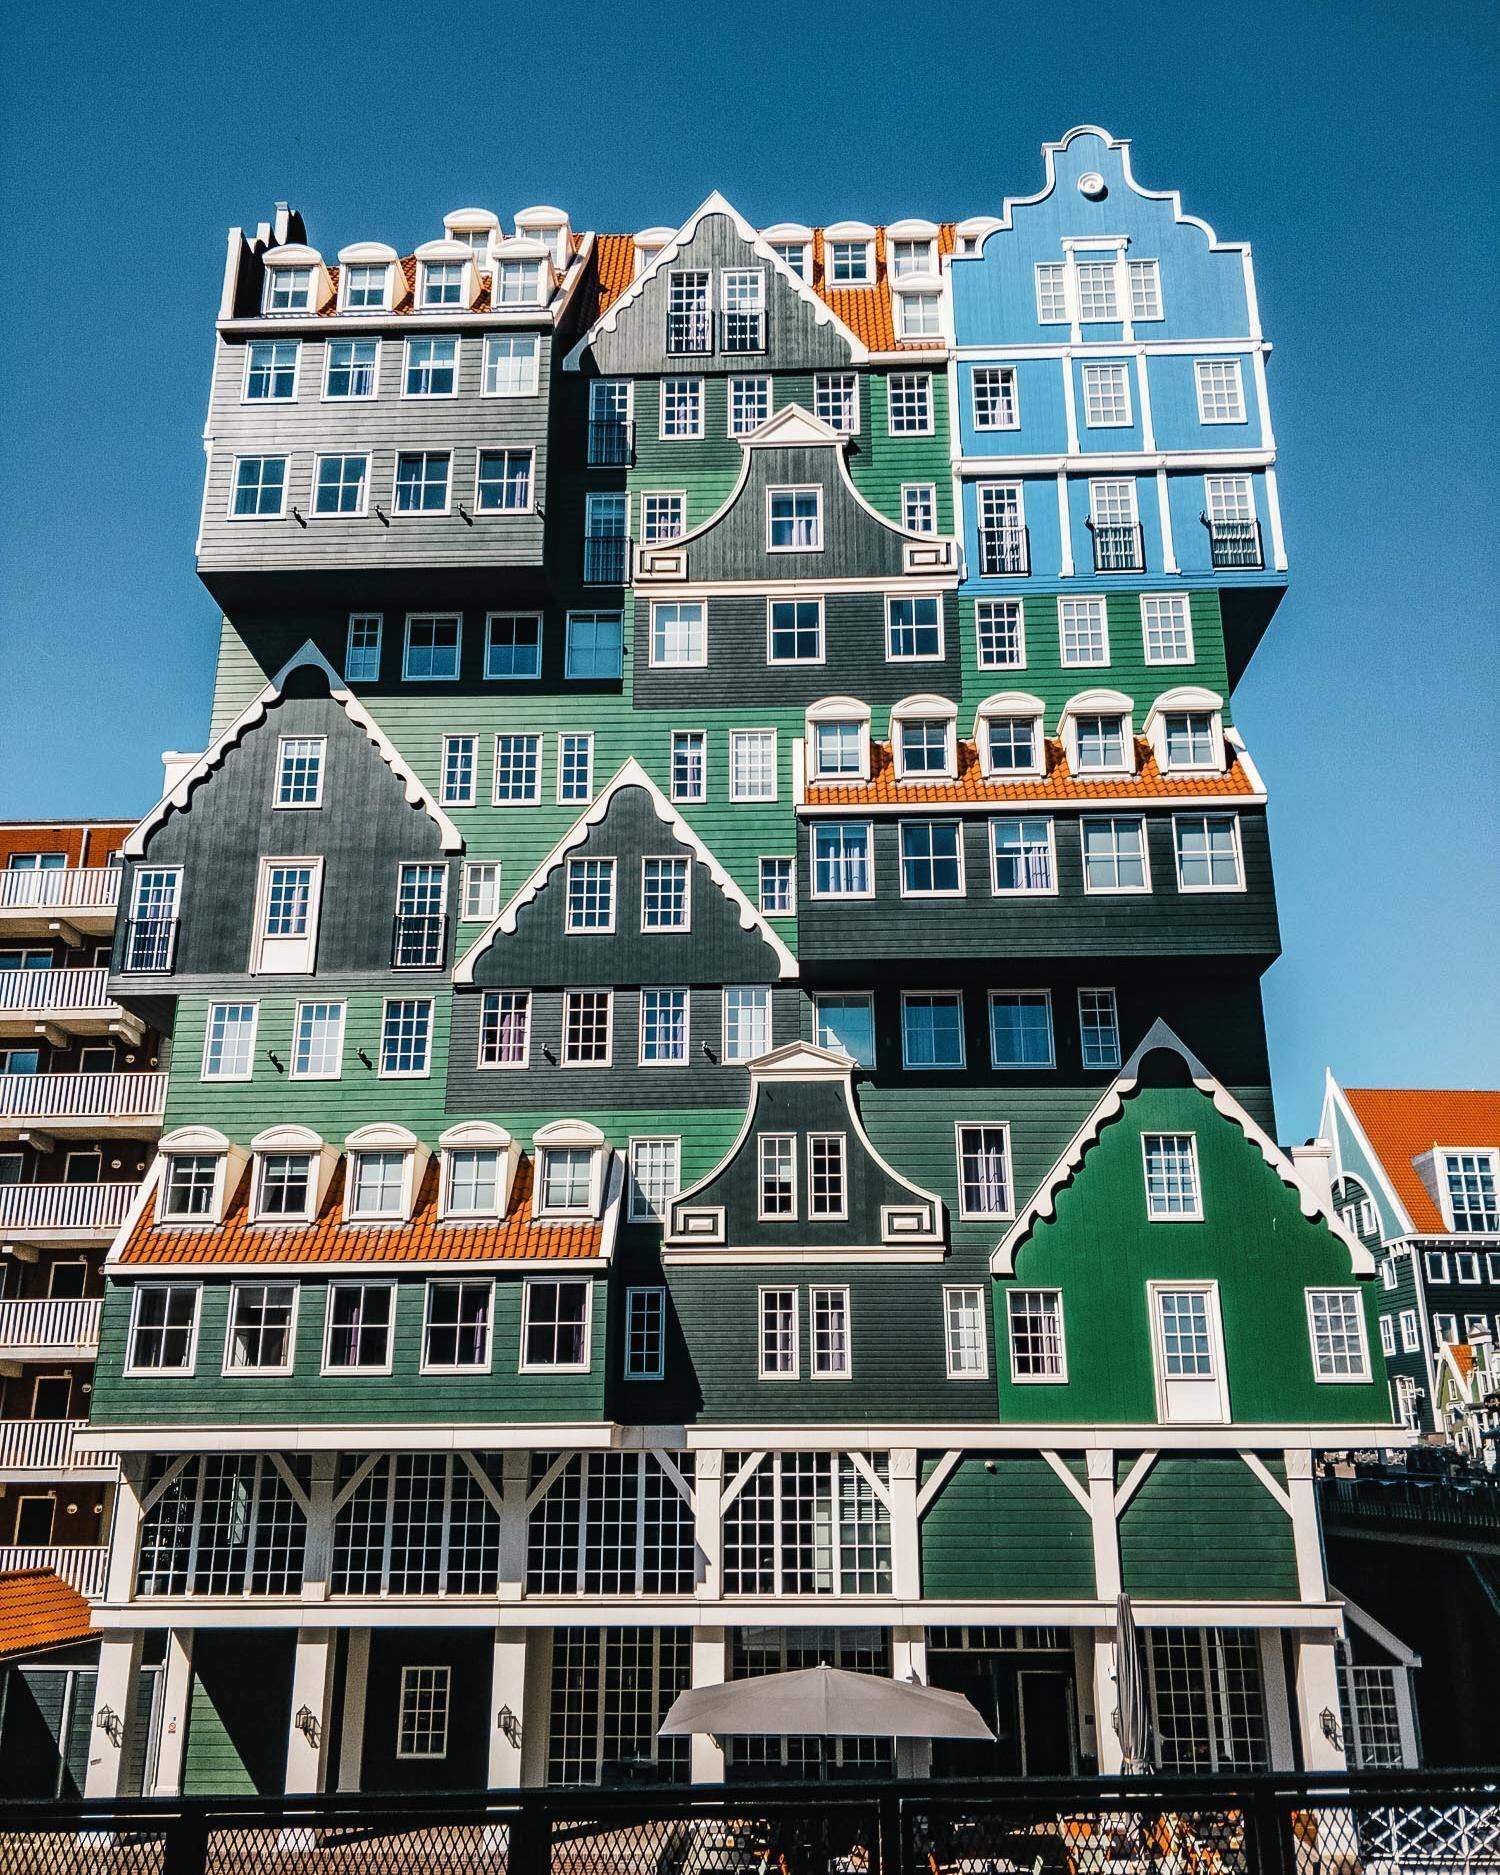 Pin by Sarina Jost on Holland in 2020 Amsterdam hotel